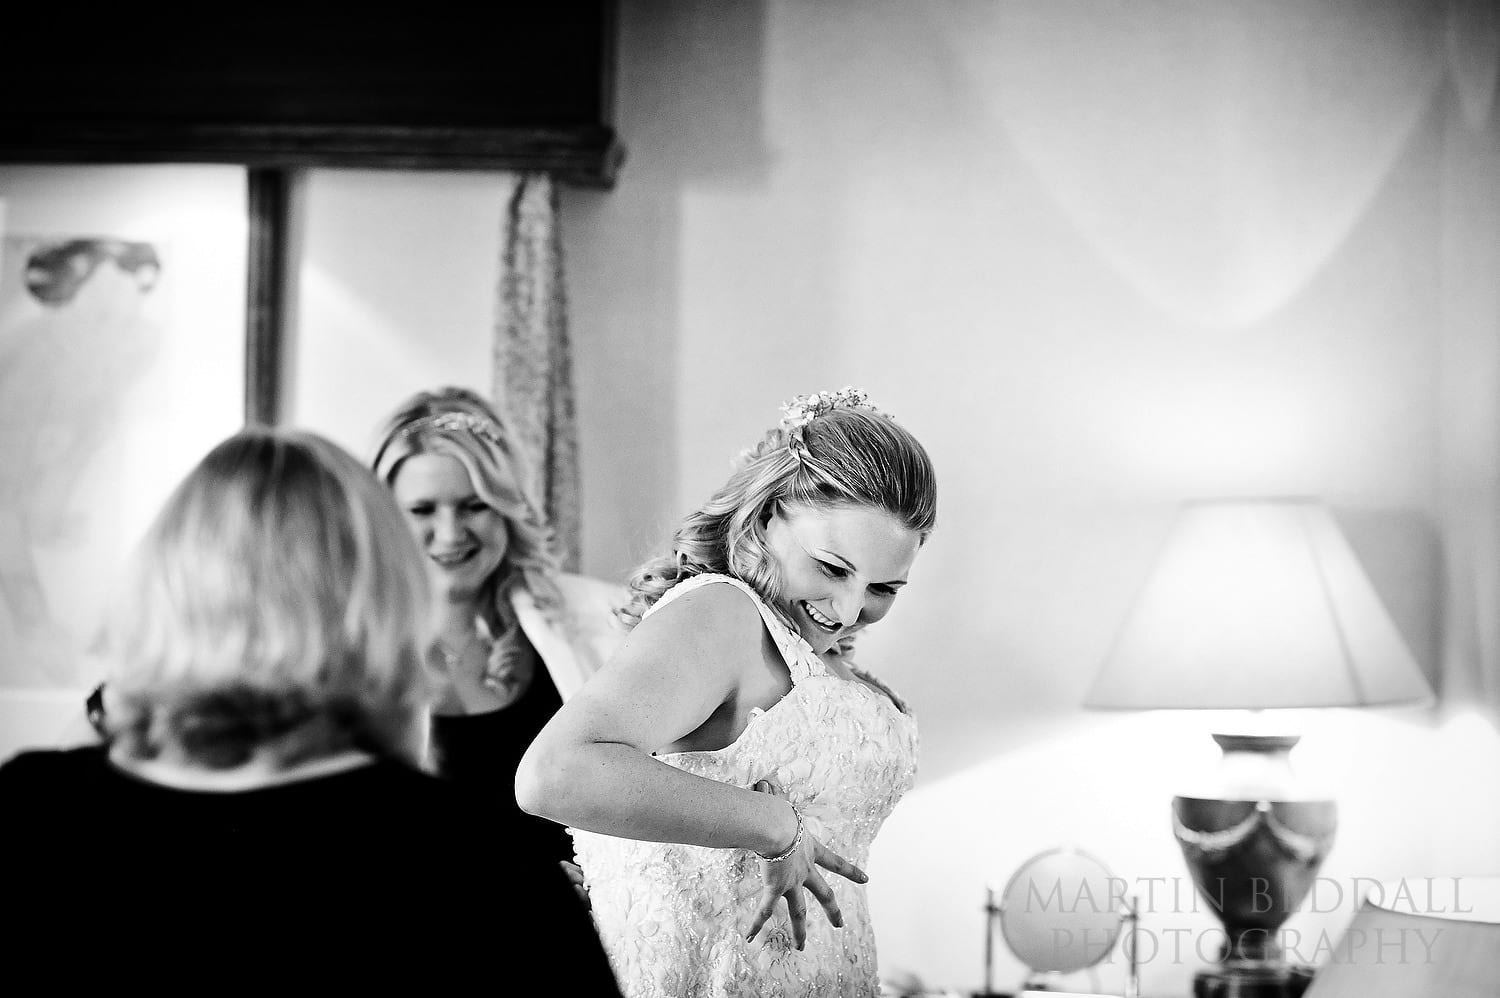 Getting the bride into her wedding dress